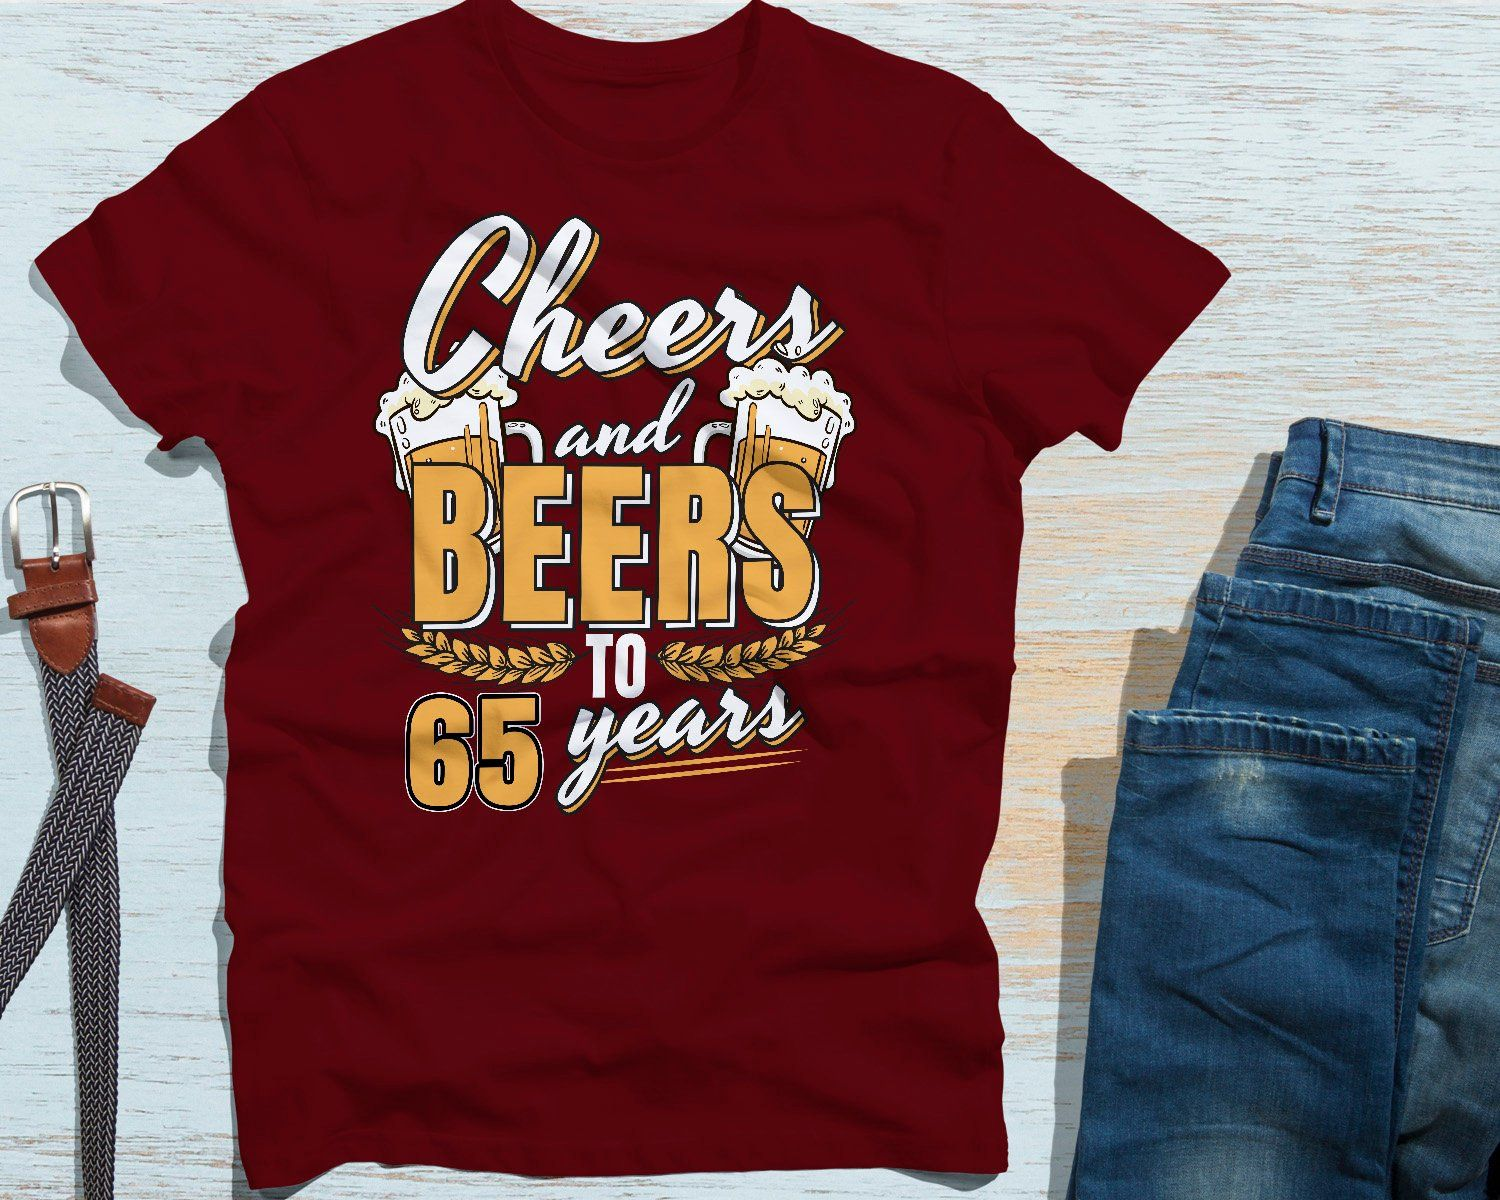 65th Birthday Shirt Cheers And Beers To 65 Years Funny Personalised TShirt For Somebody Turning Old Free Shipping By WowTeez On Etsy